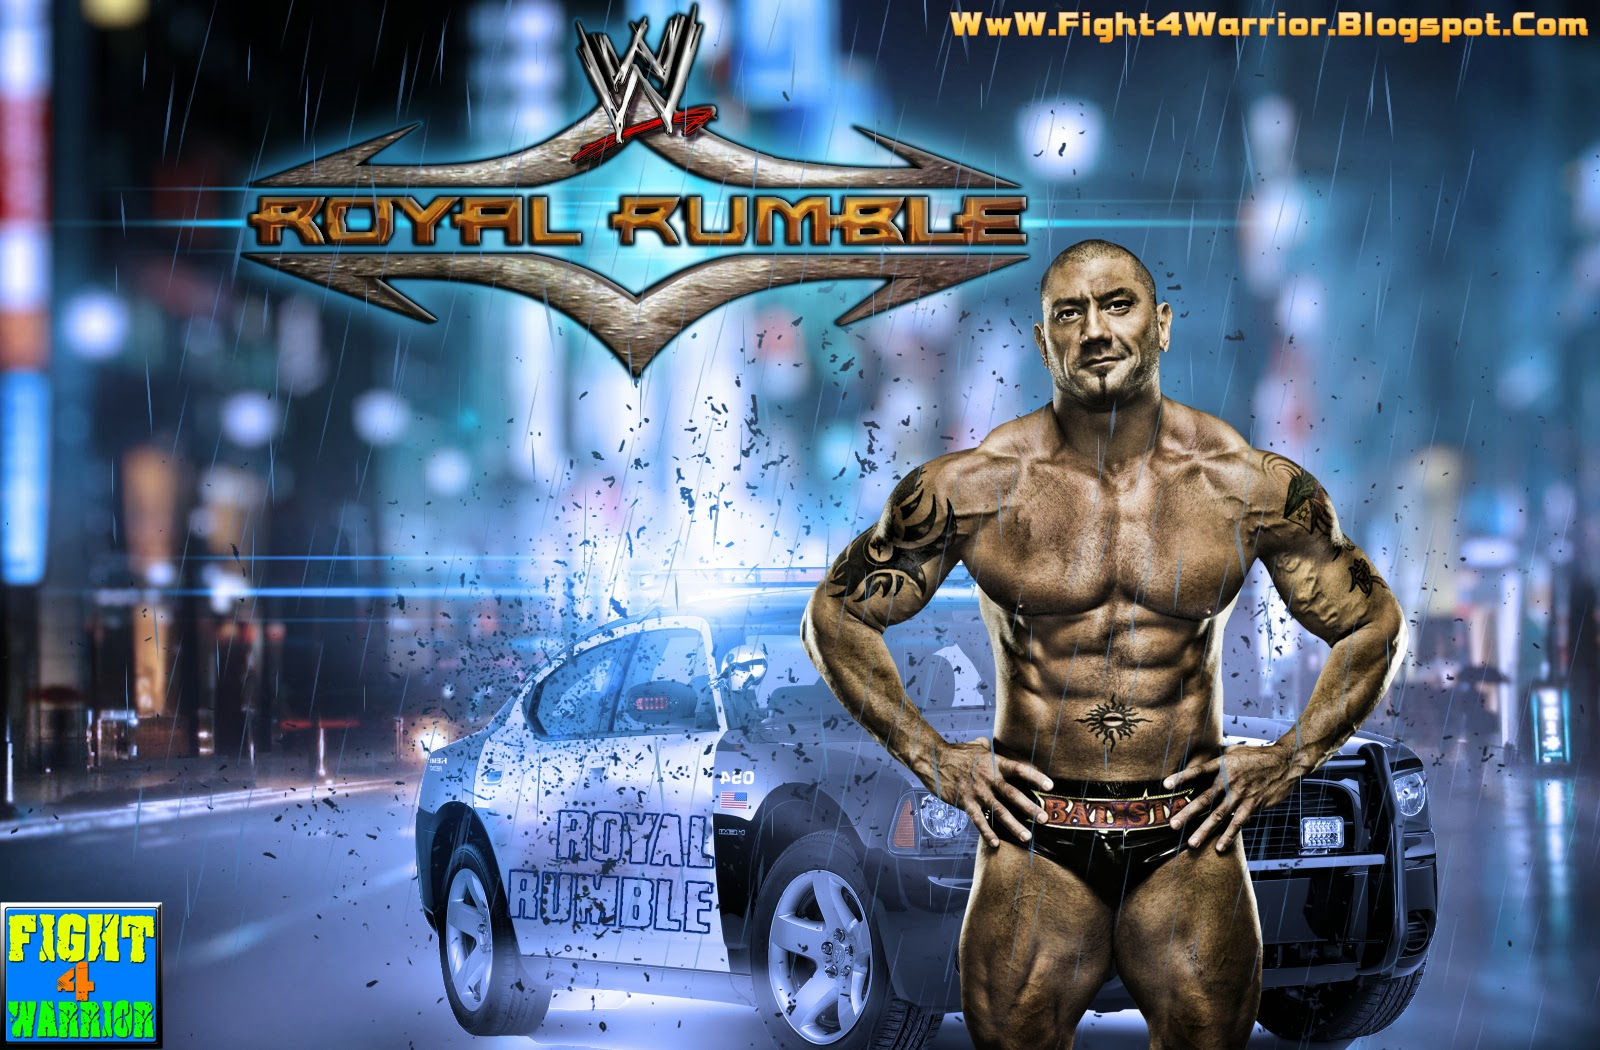 WWE Royal Rumble (2014) - Results, News And Videos